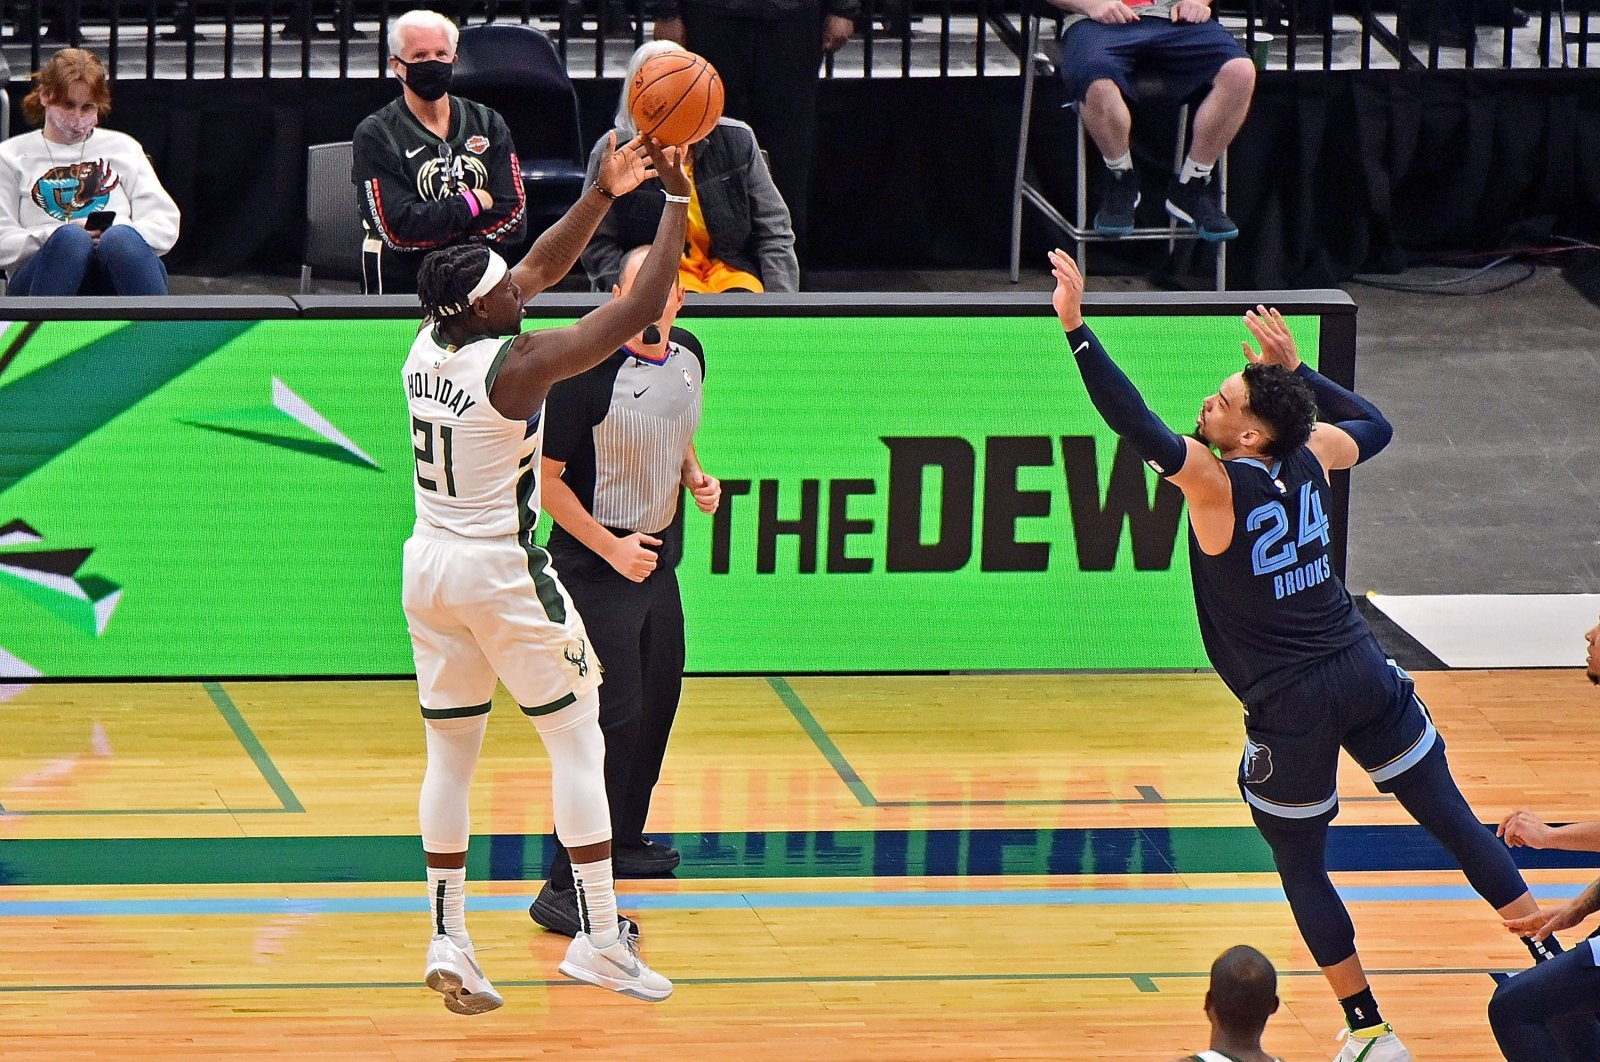 Milwaukee Bucks' Jrue Holiday (L) shoots the game-winning shot against Memphis Grizzlies' Dillon Brooks in an NBA game at FedExForum Memphis, Tennessee, March 04, 2021. (AFP Photo)